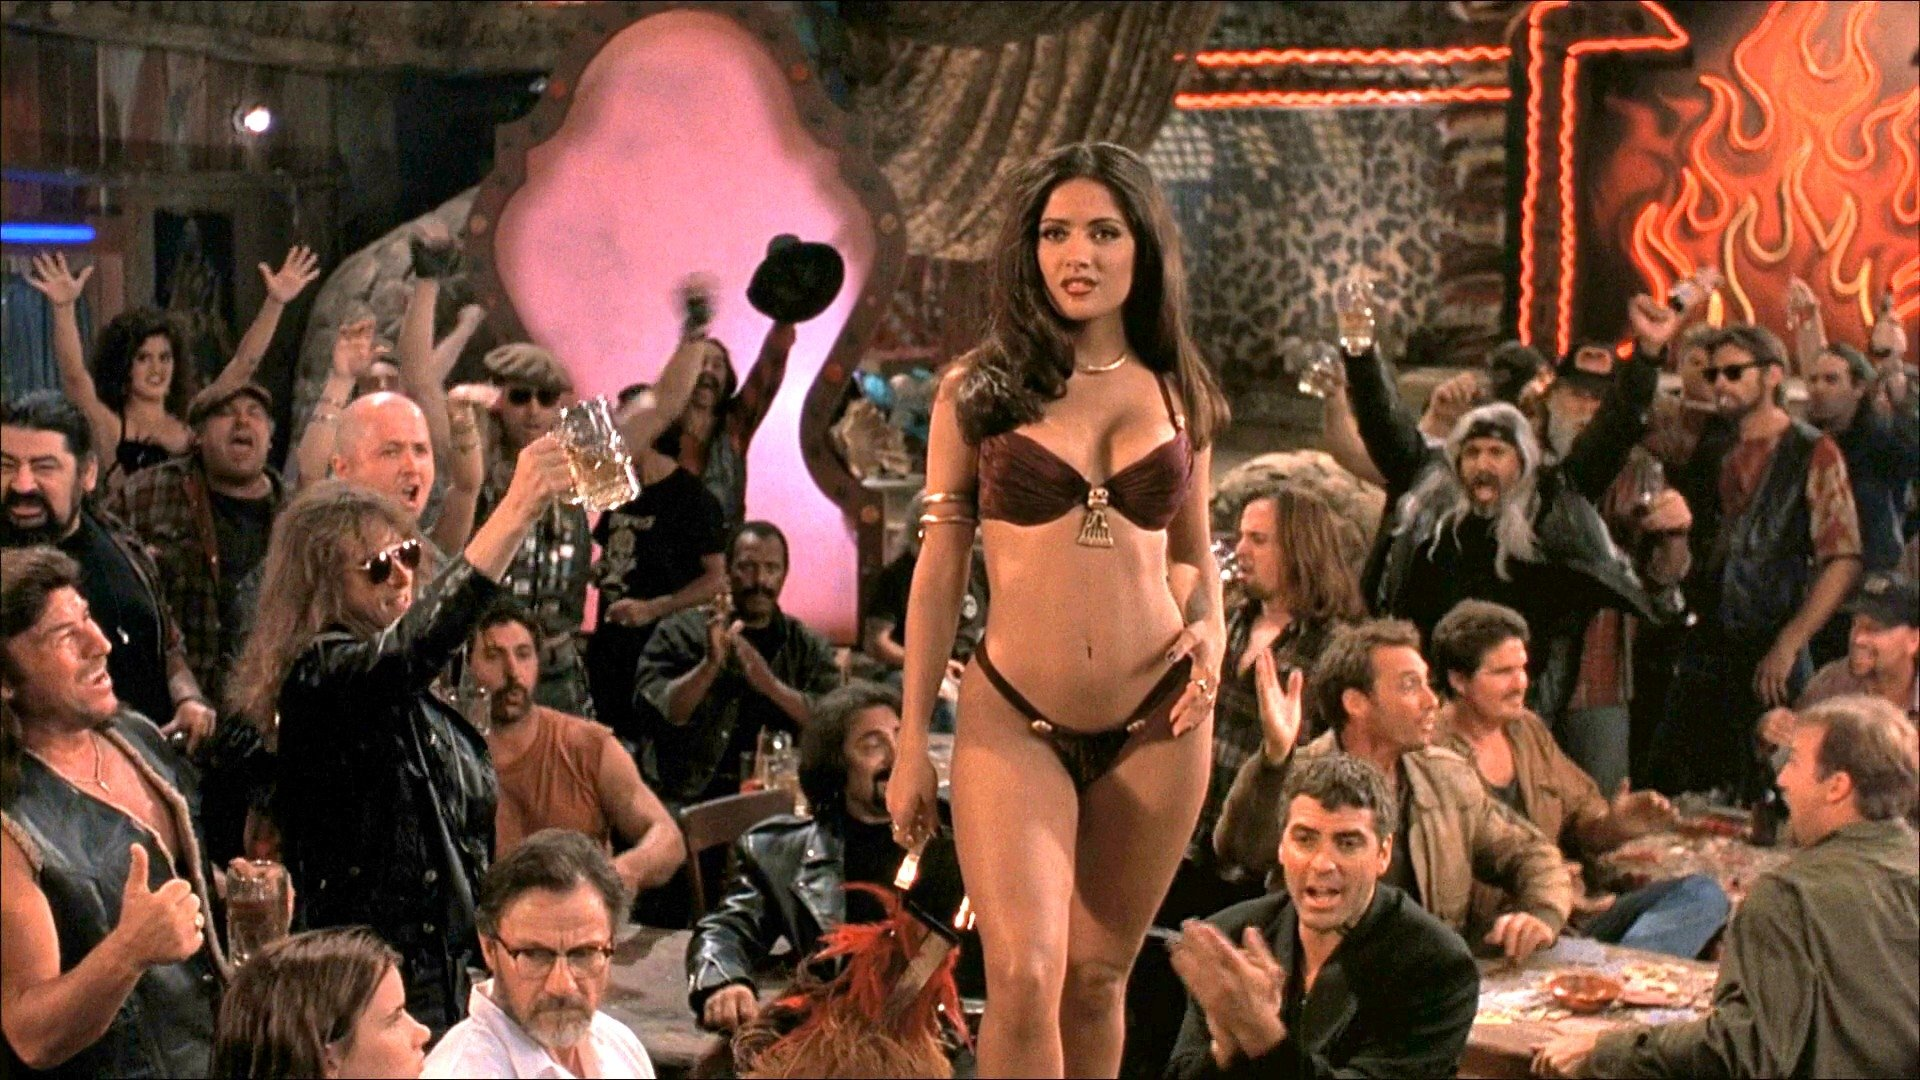 From Dusk Till Dawn Hd Wallpaper Background Image 1920x1080